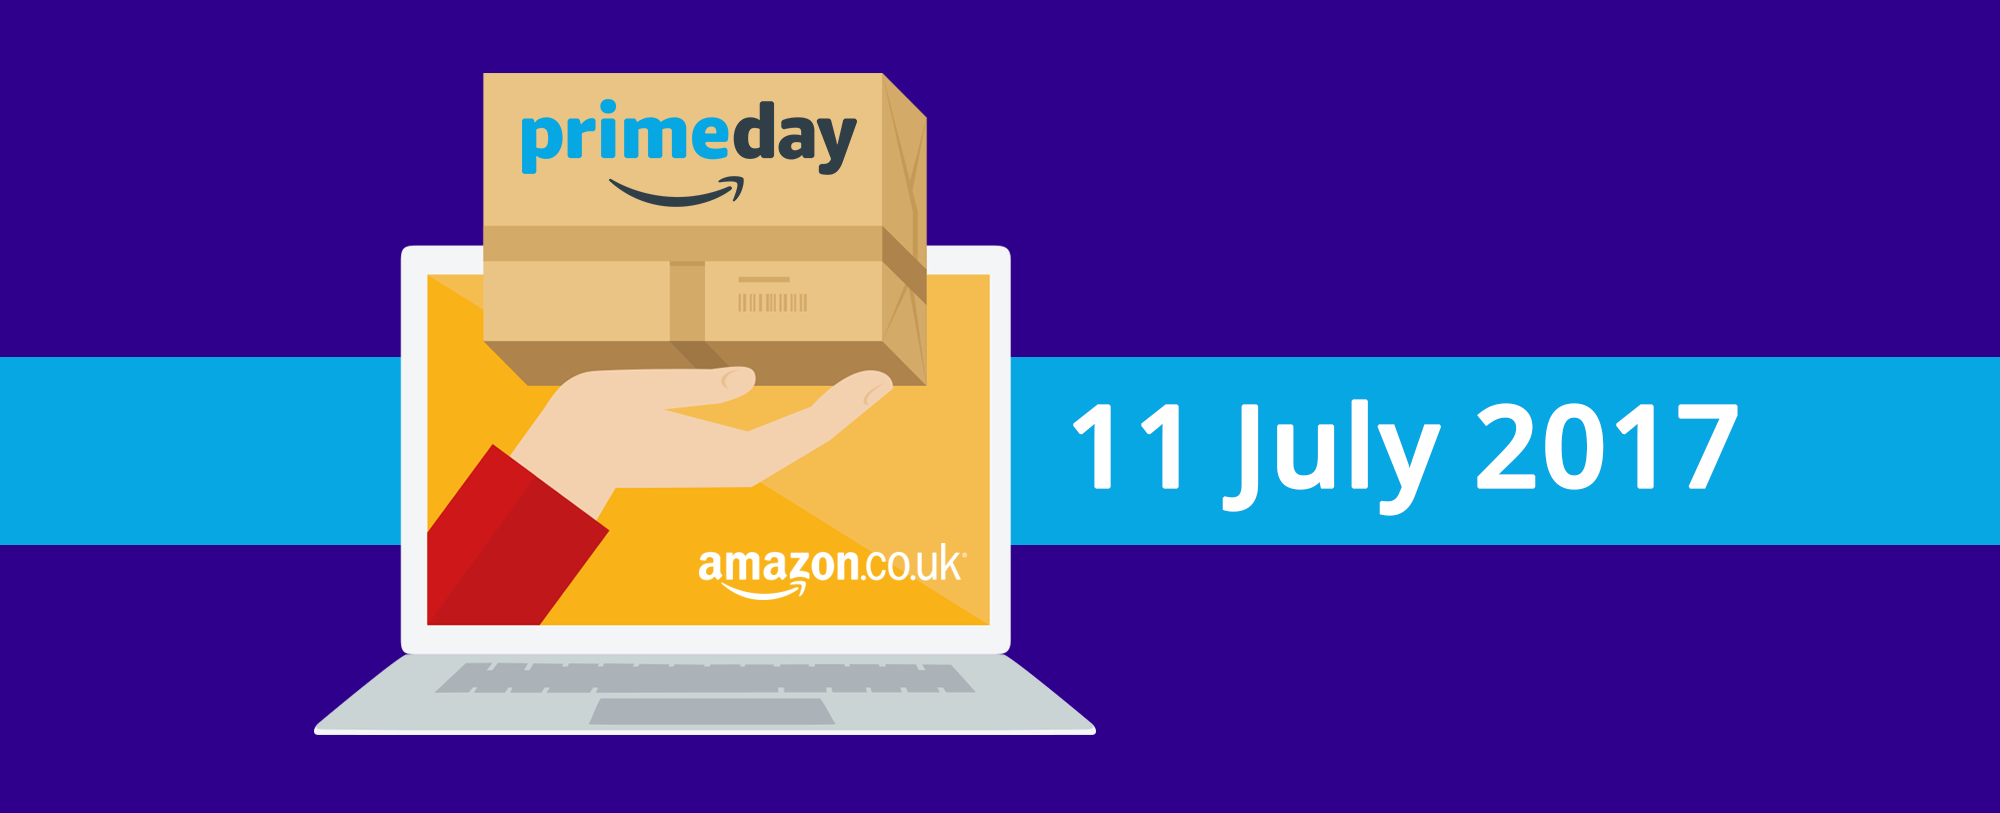 Worried About Amazon and Prime Day? It's Time to Innovate, Innovate, Innovate!